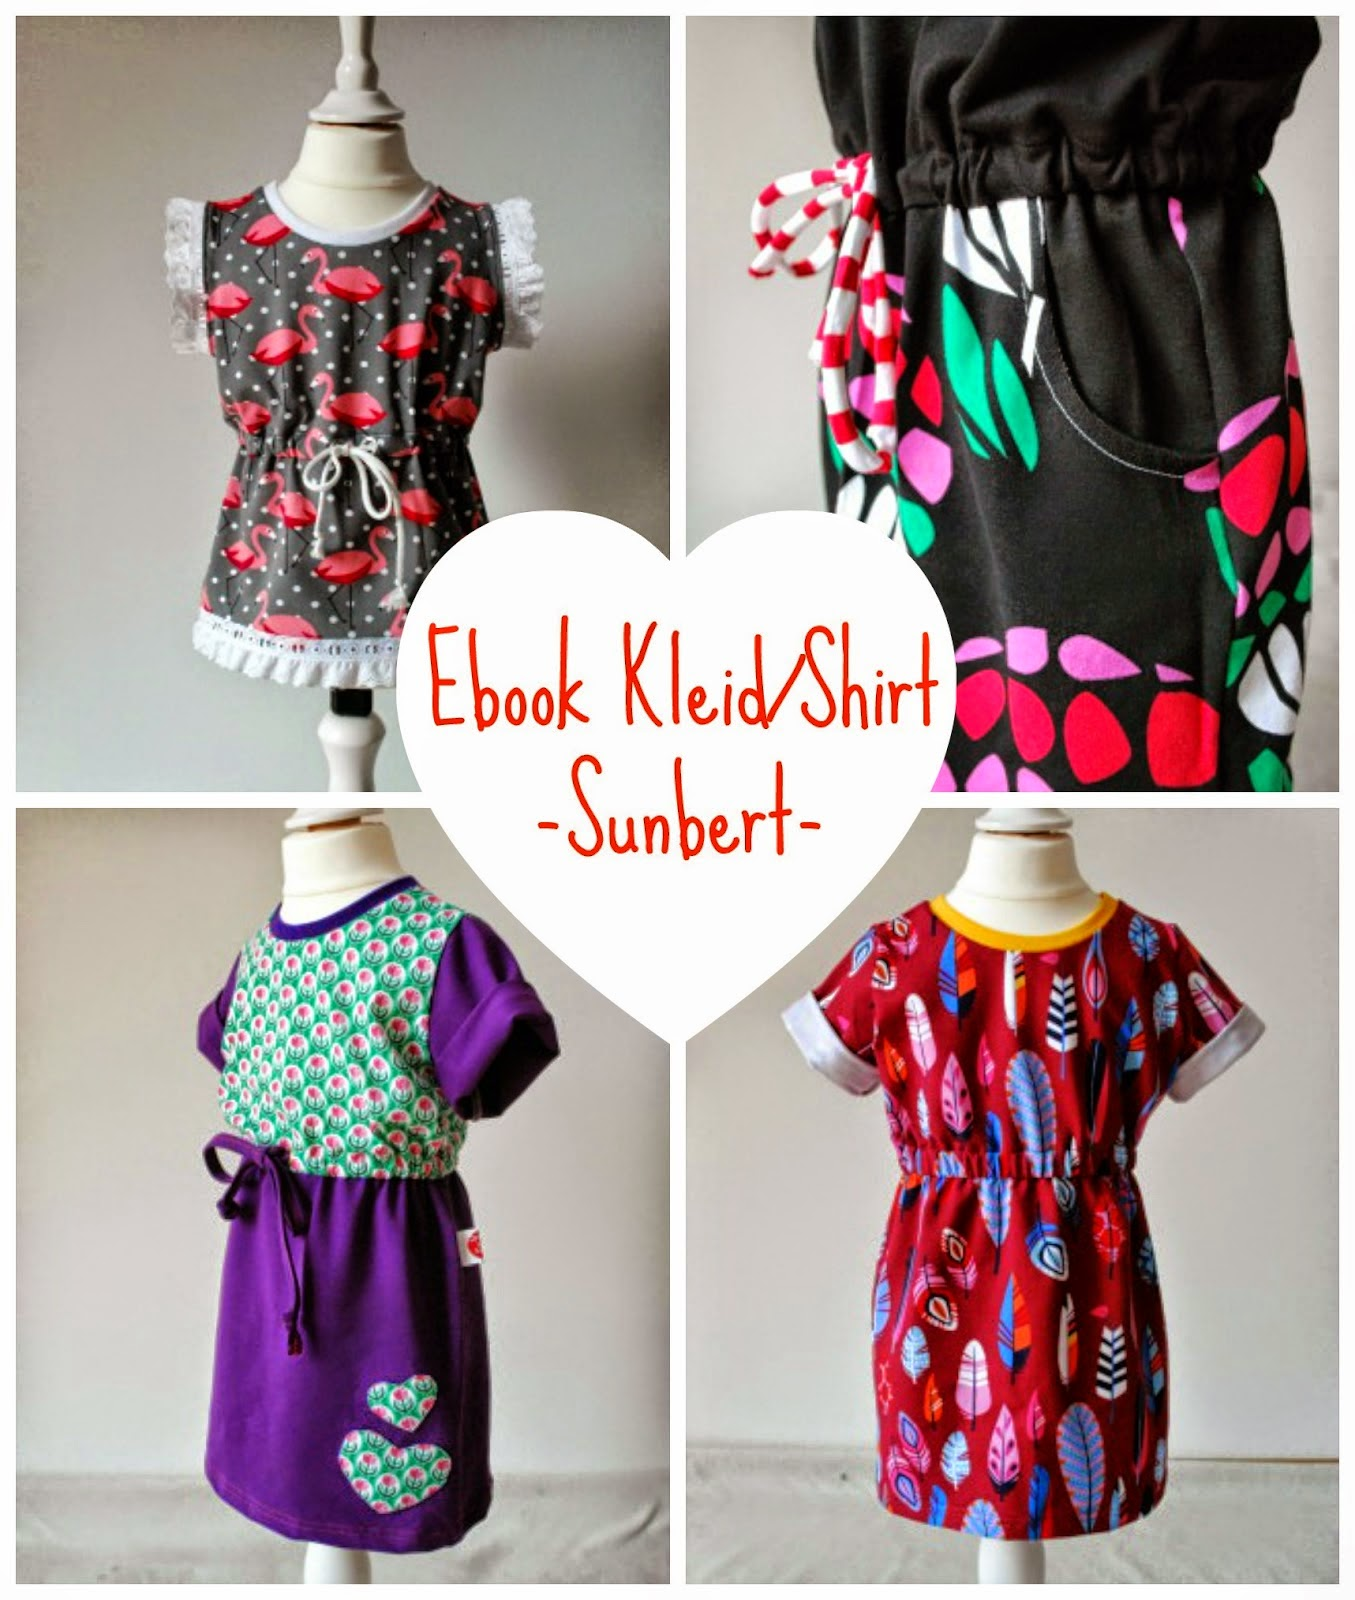 http://de.dawanda.com/product/64558475-Ebook-ShirtKleid-Sunbert